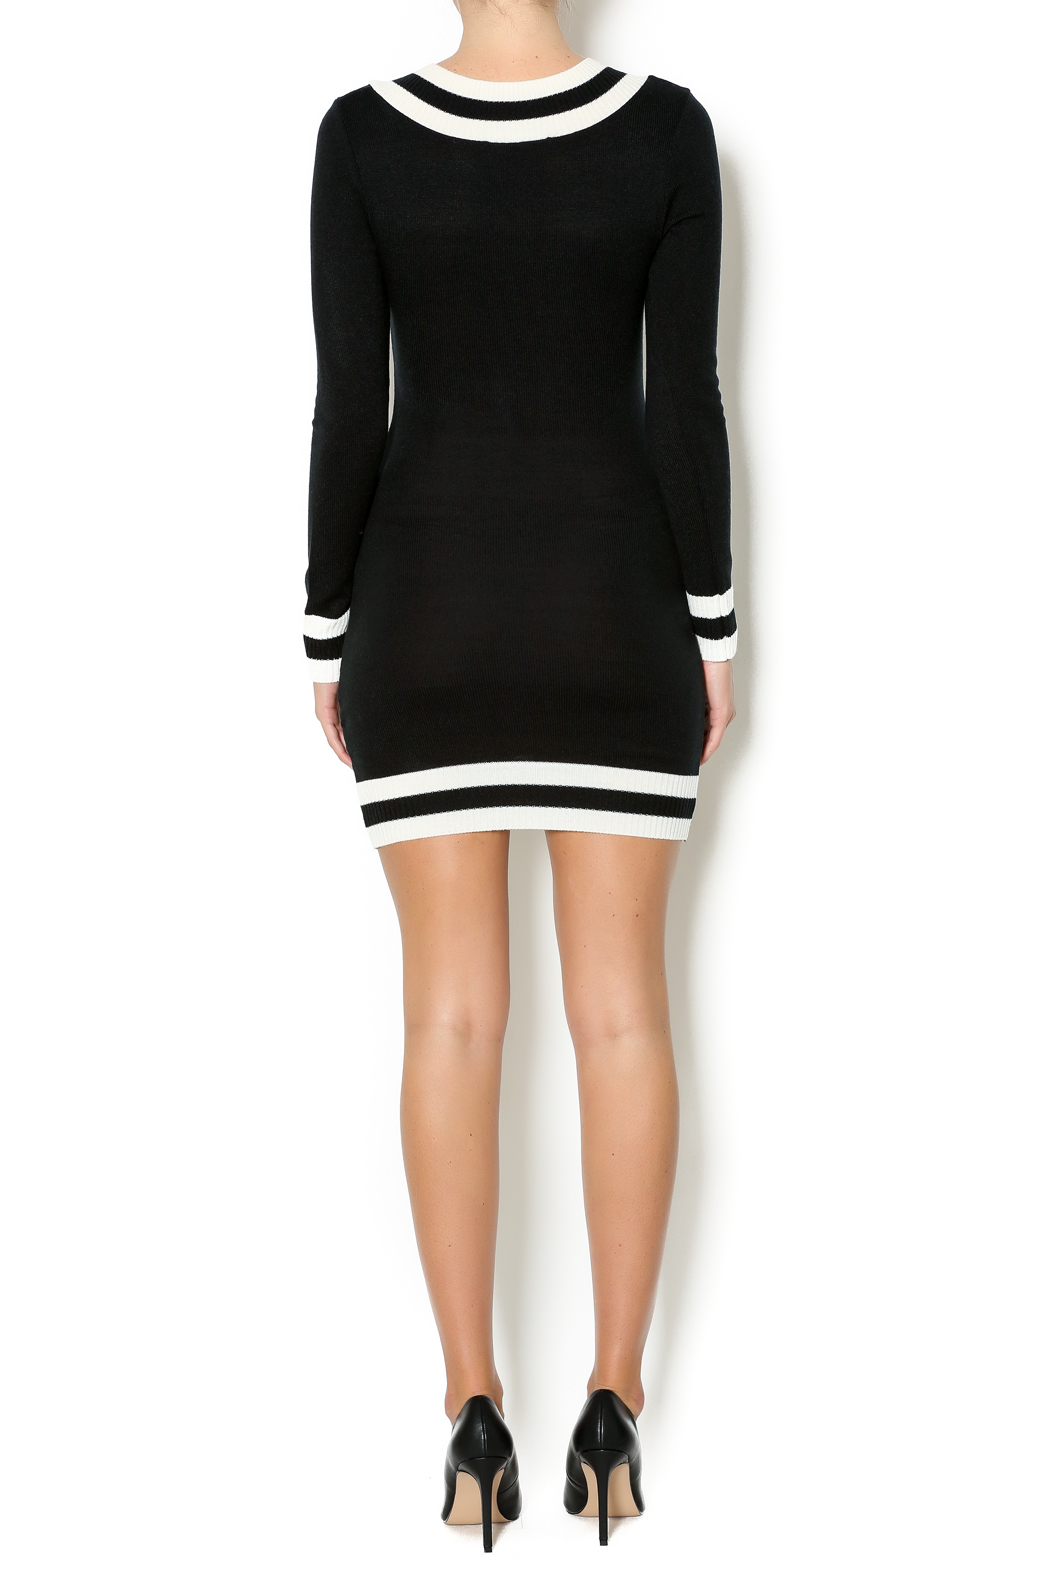 5214c4d20a hera collection Sporty Sweater Dress from Alabama by Flaunt Boutique ...